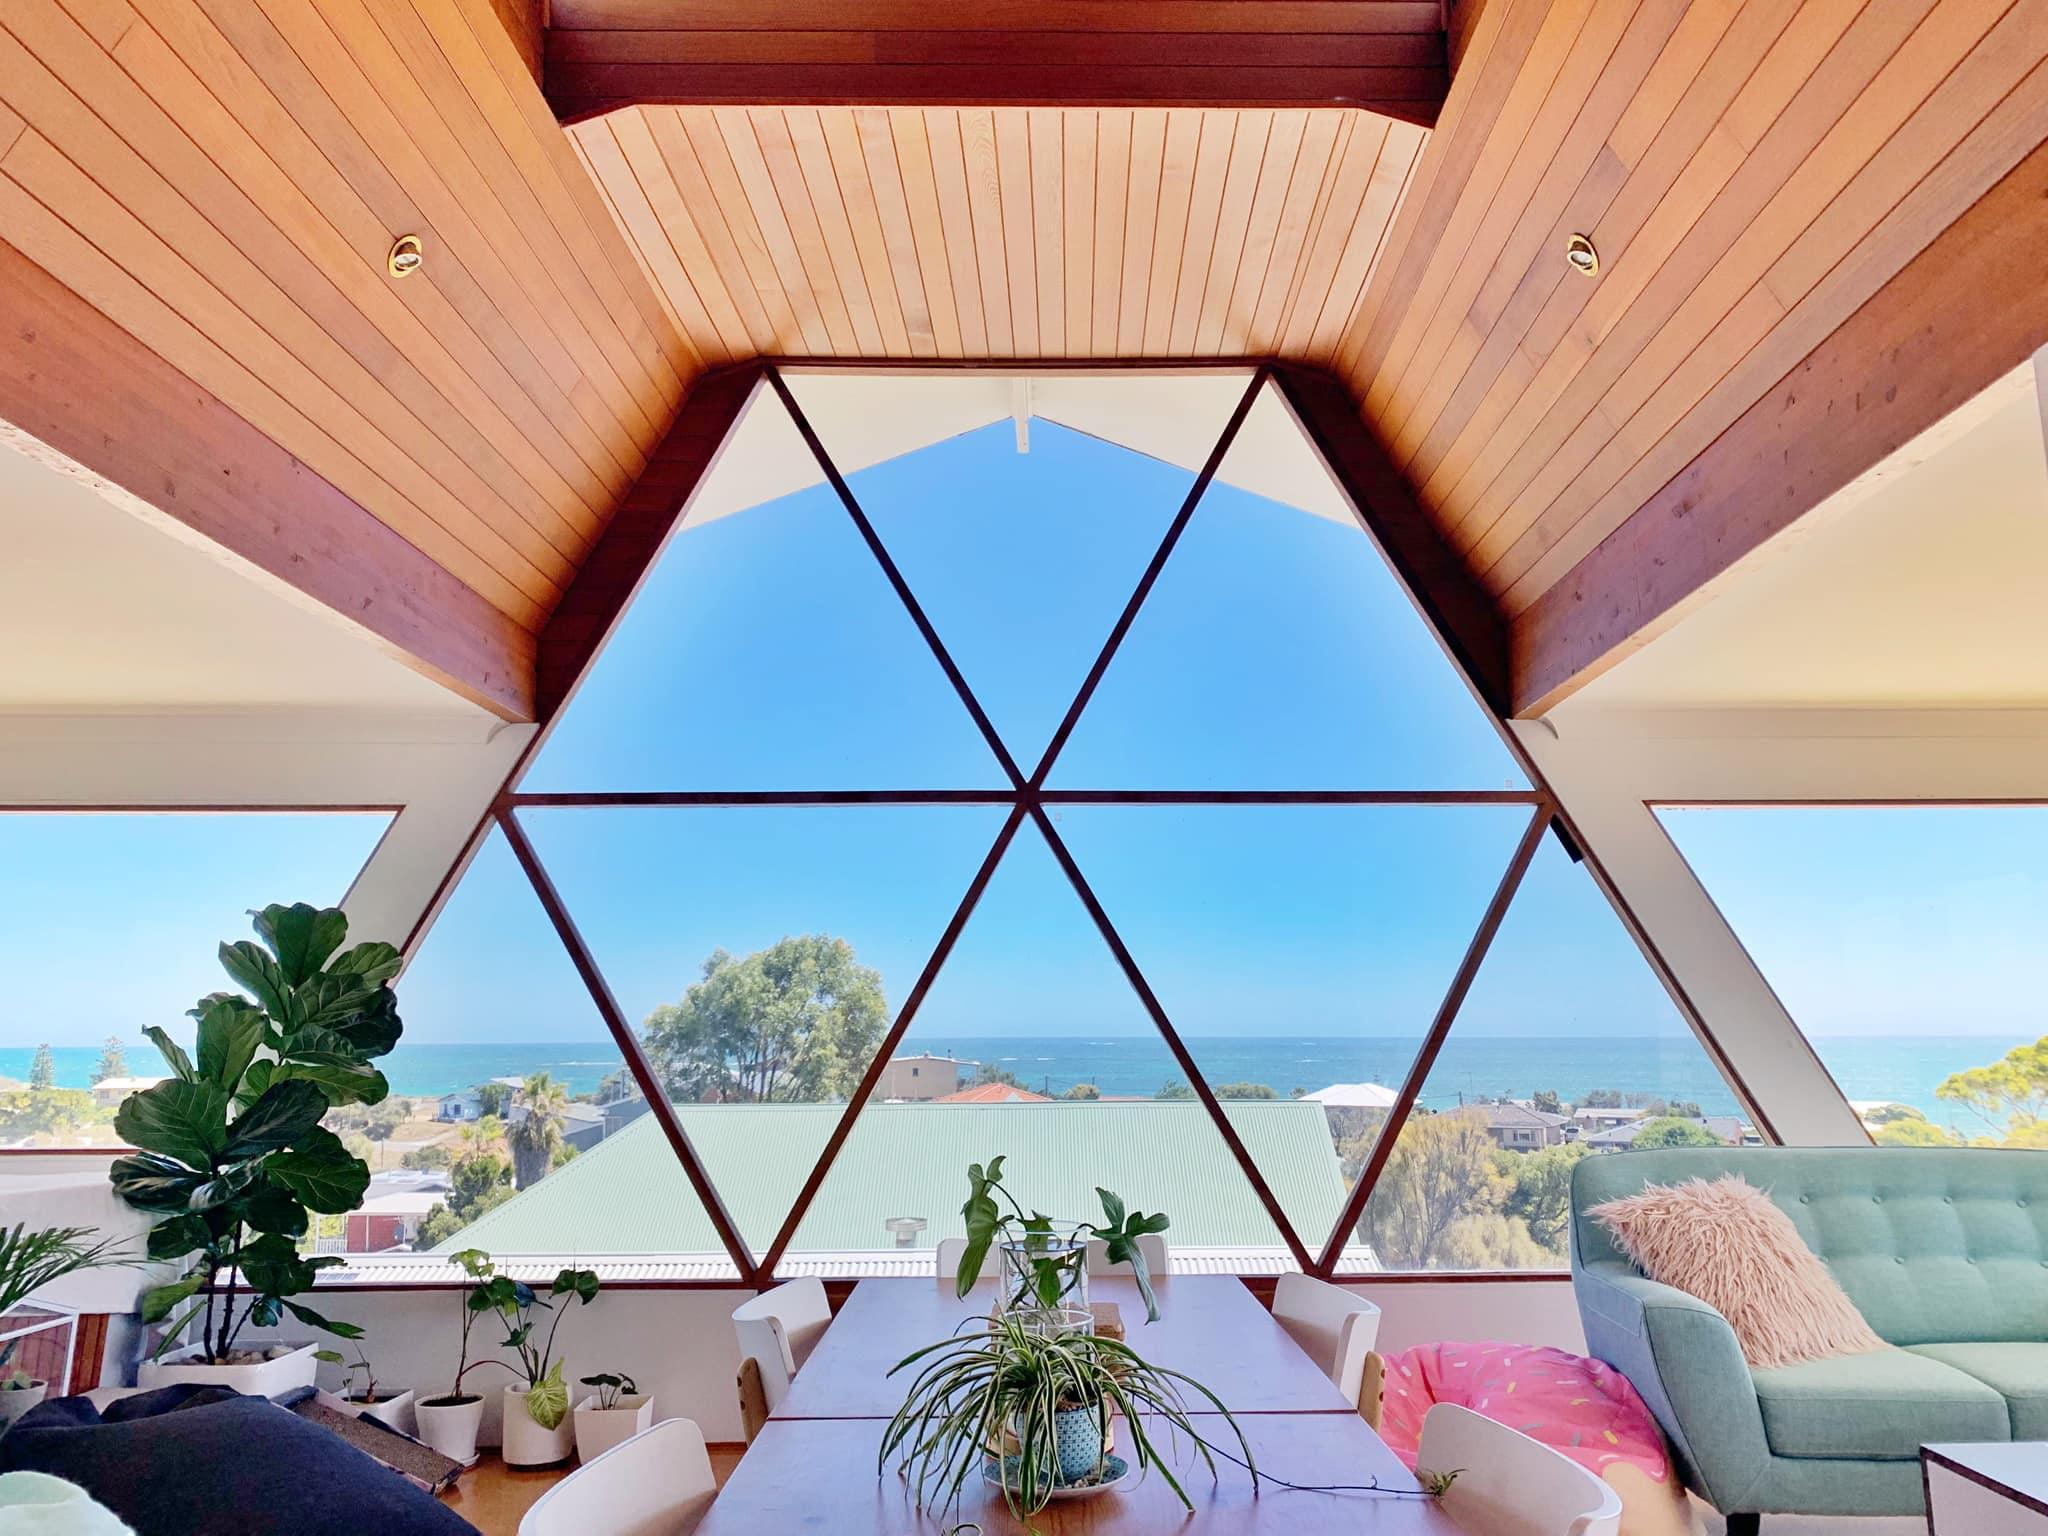 2 Rooms In Gorgeous Seaview Home By The Beach